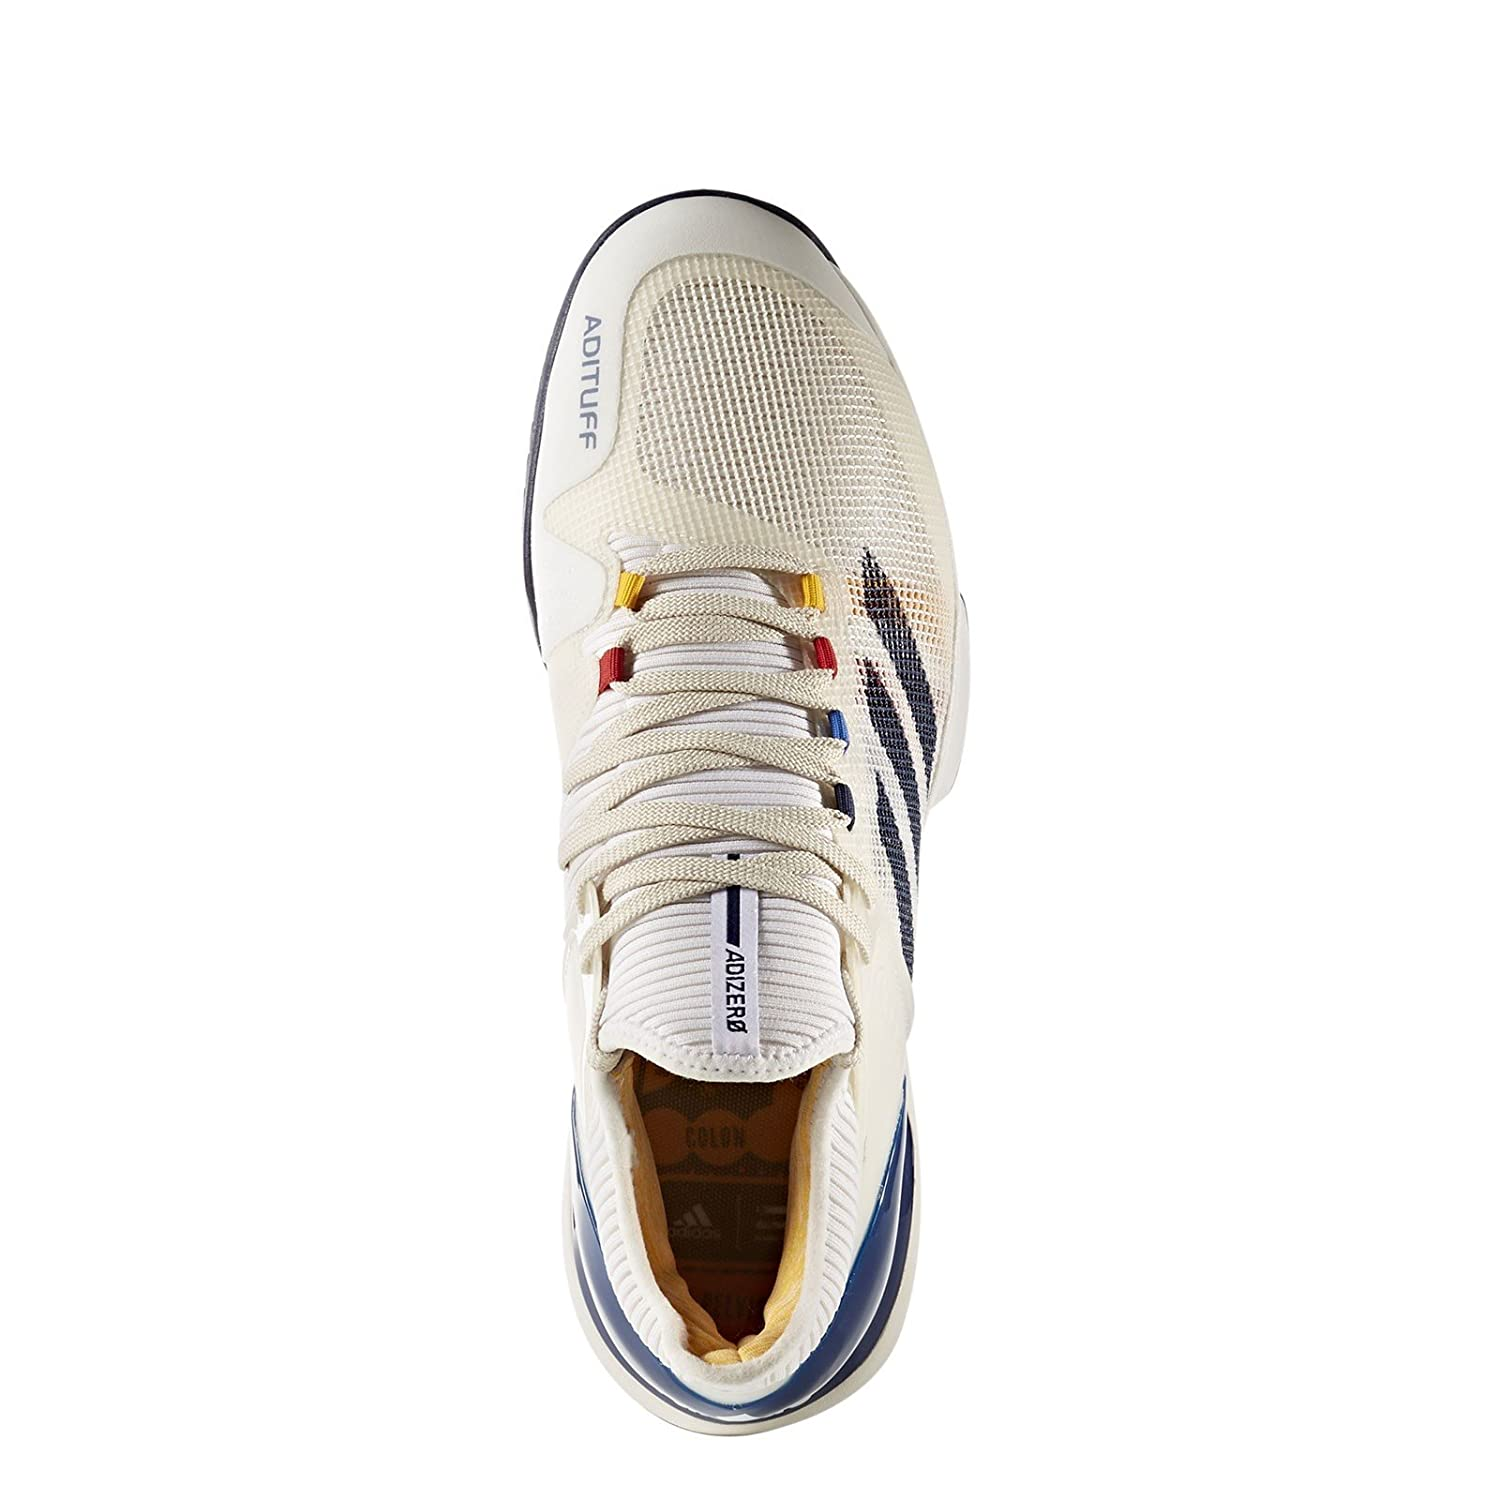 36b67618b adidas x Pharrell Williams Men Adizero Ubersonic 2 white chalk white dark  blue scarlet Size 6.5 US  Amazon.co.uk  Sports   Outdoors